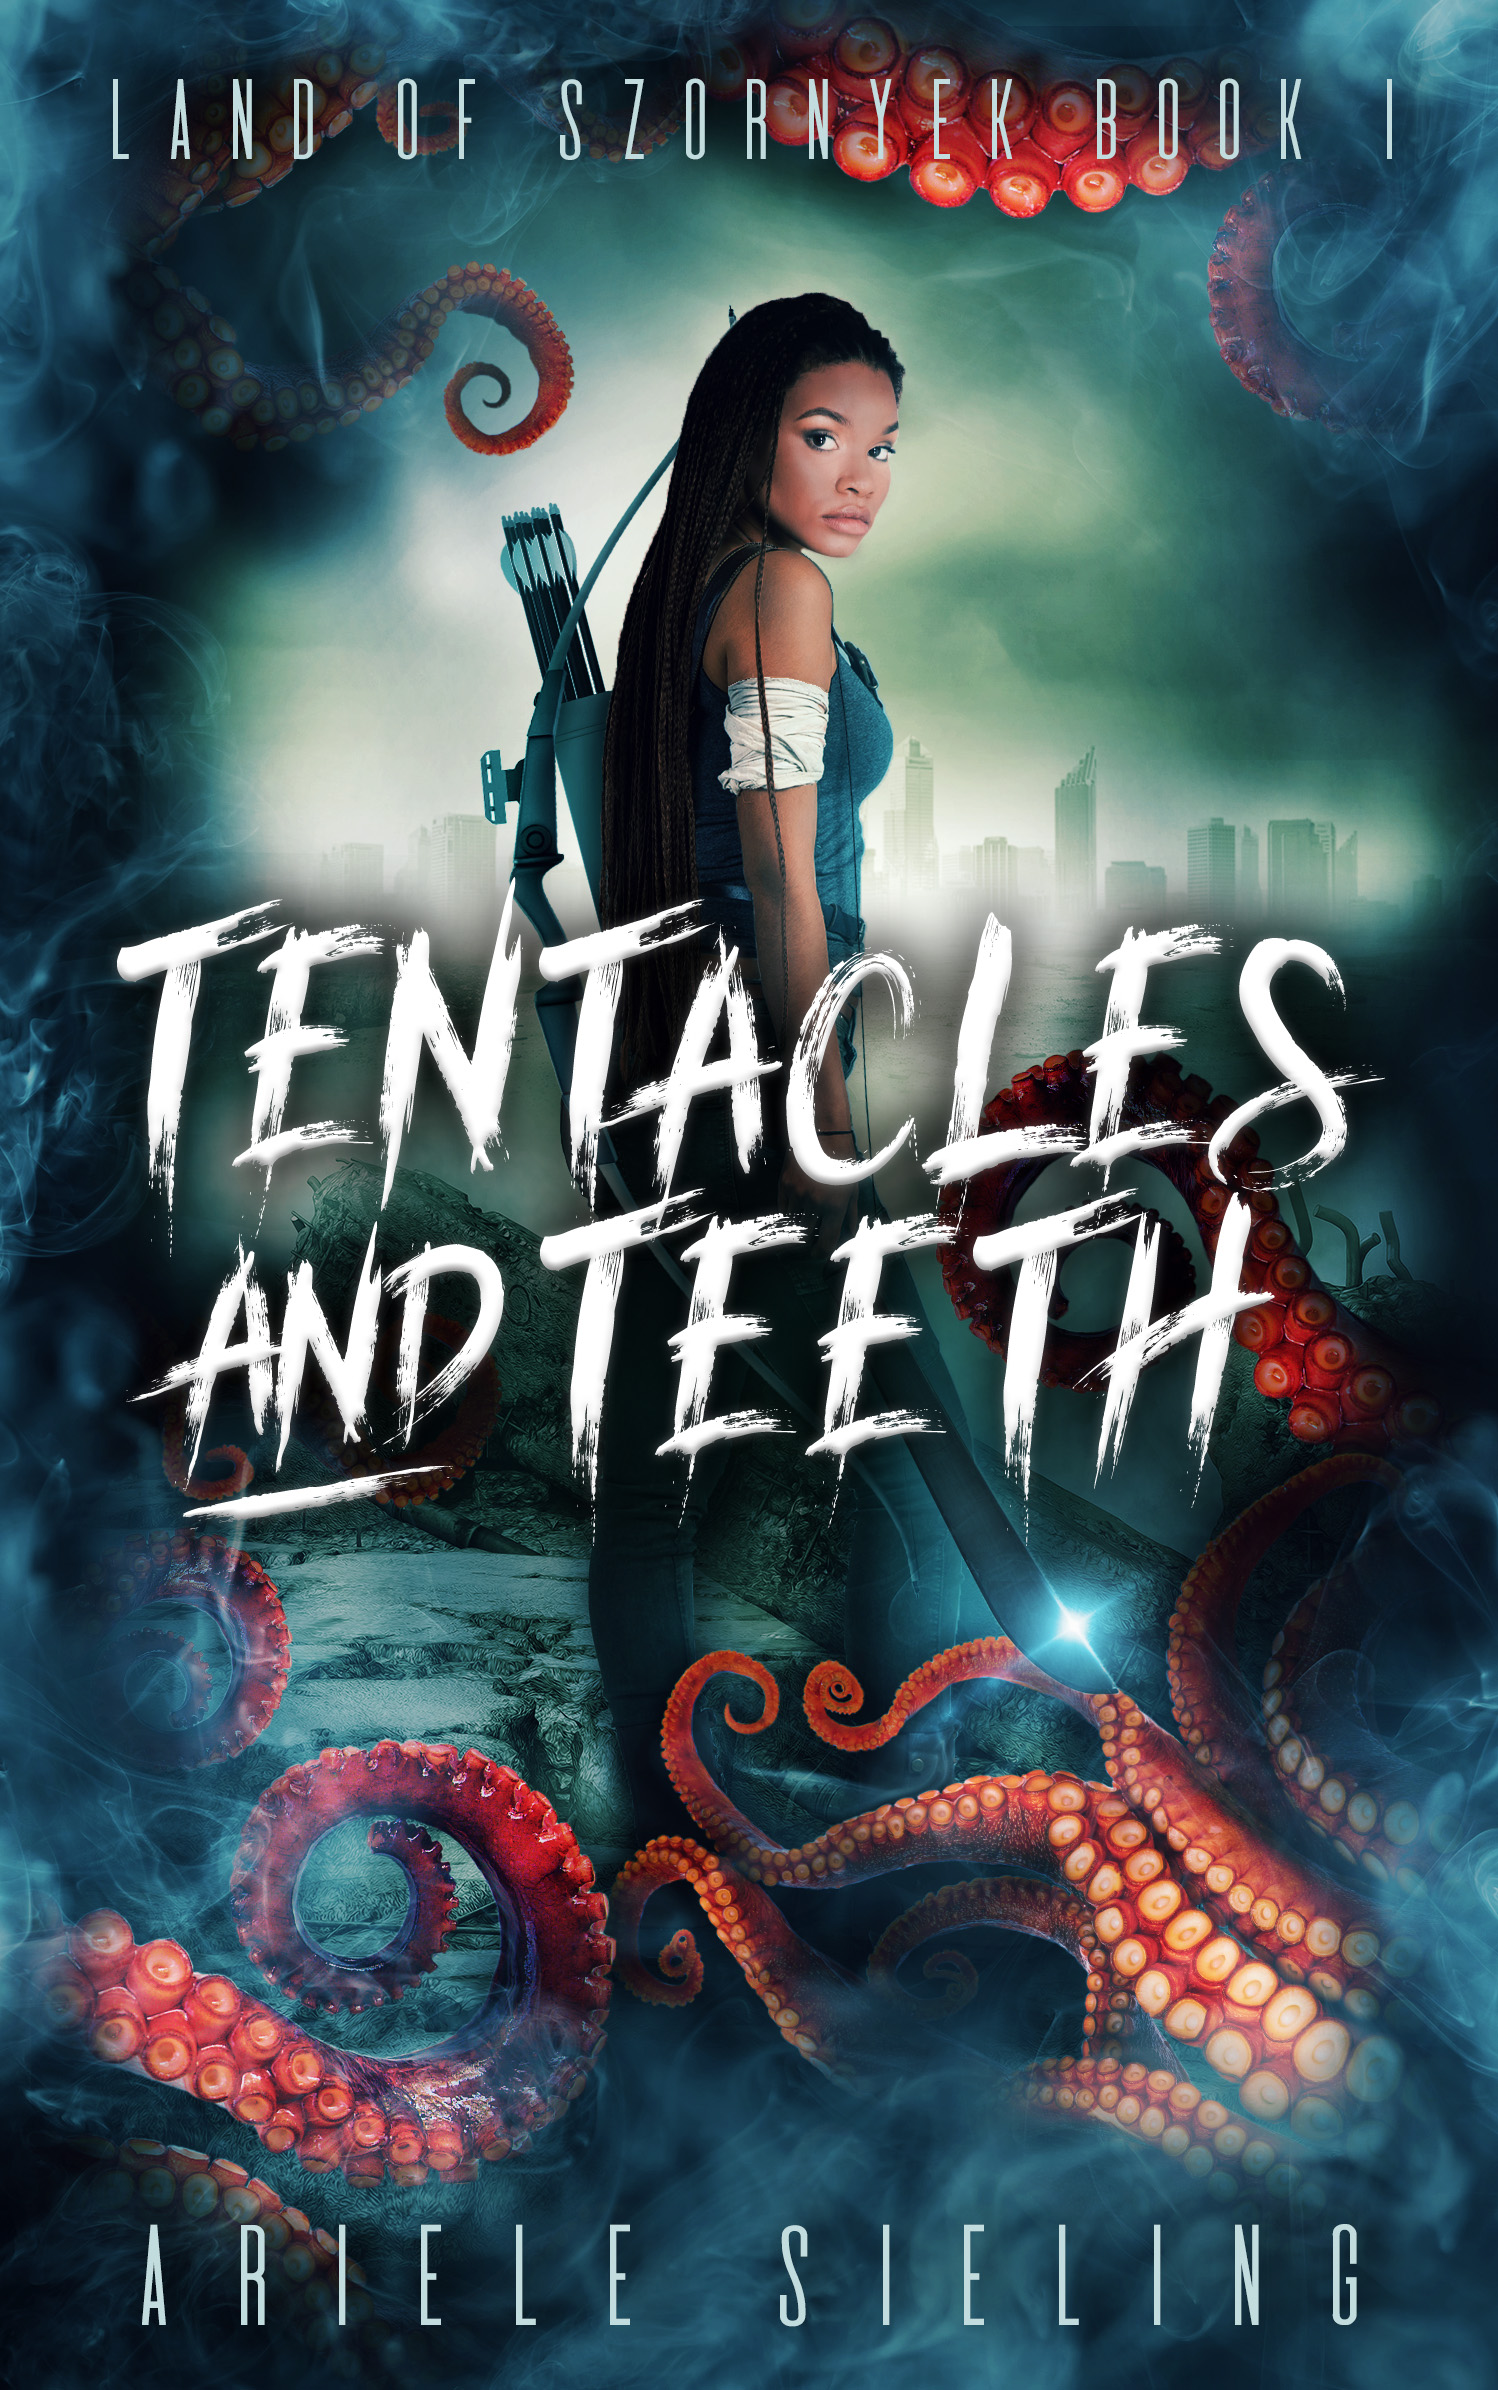 The book cover for Tentacles and Teeth by Ariele Sieling